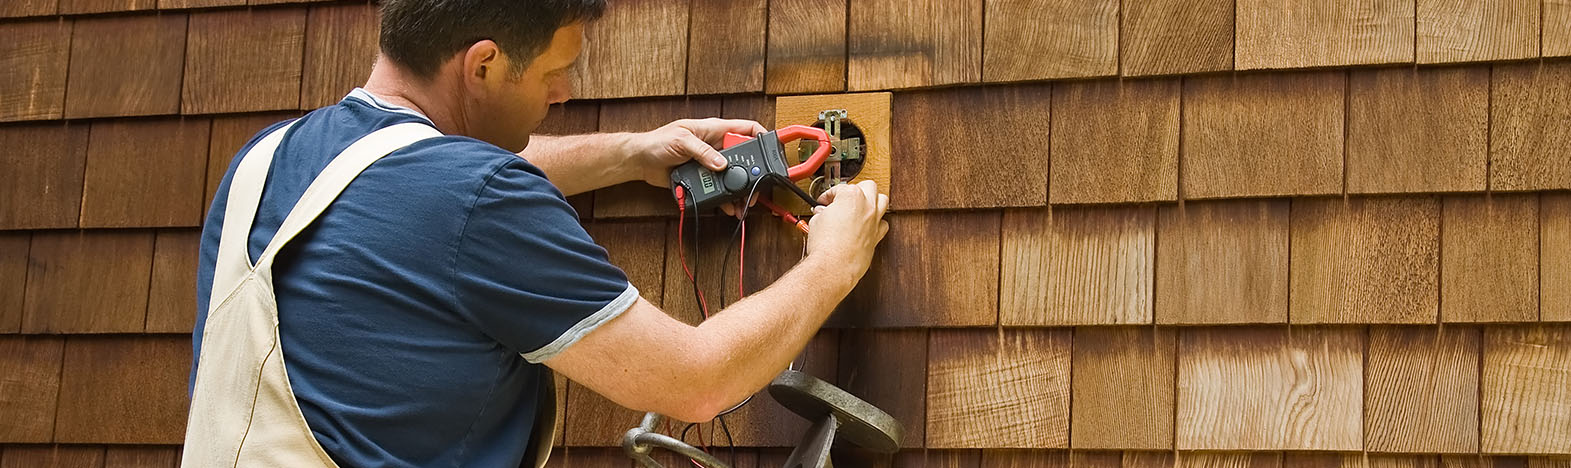 Maplewood Electrician, Electrical Contractor and Residential Electrician